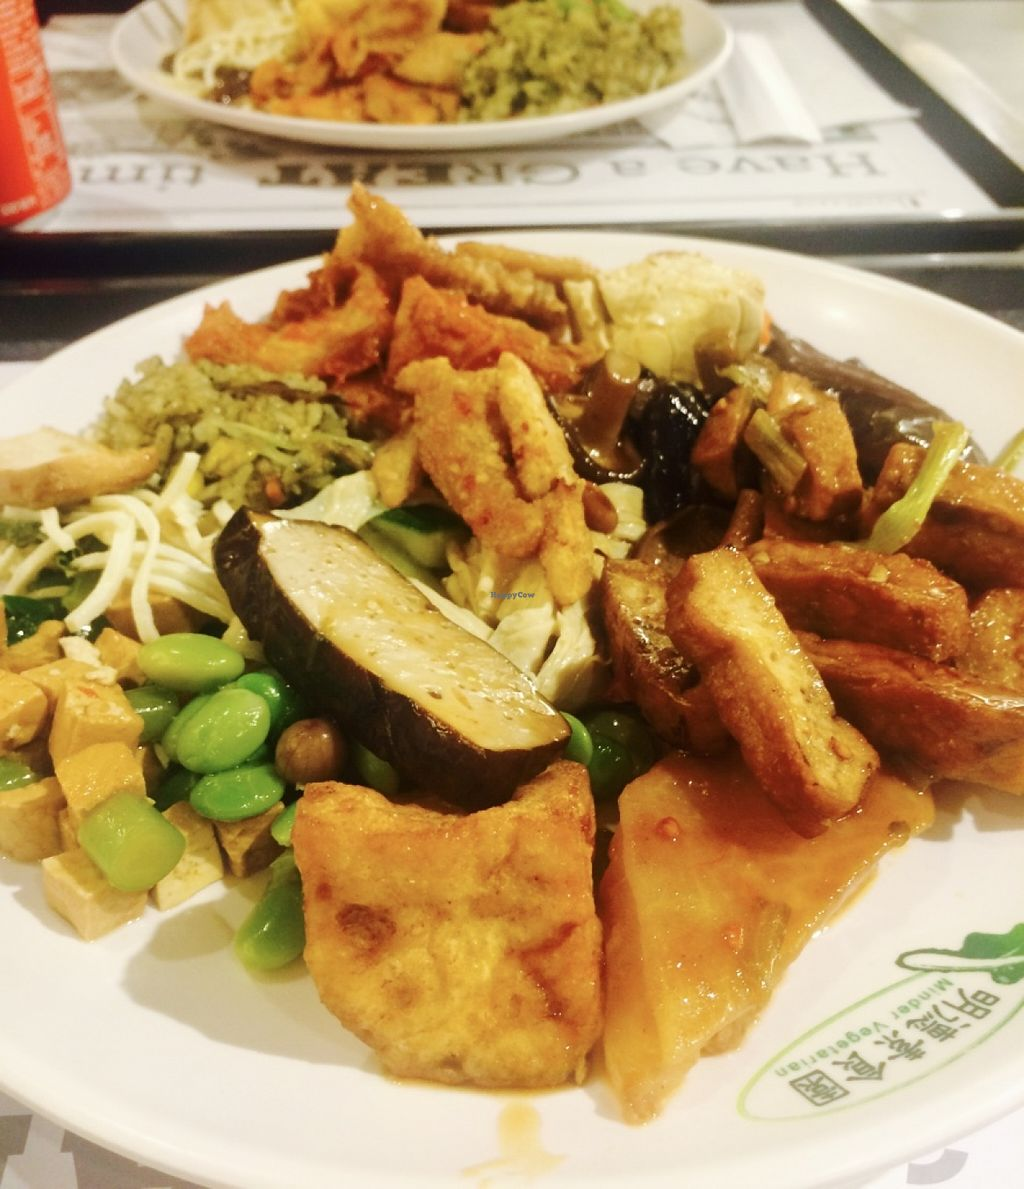 """Photo of Minder Vegetarian - Q Square Mall  by <a href=""""/members/profile/Pitaya"""">Pitaya</a> <br/>Lots of different kind of tofu in the buffet <br/> June 11, 2016  - <a href='/contact/abuse/image/29036/153496'>Report</a>"""